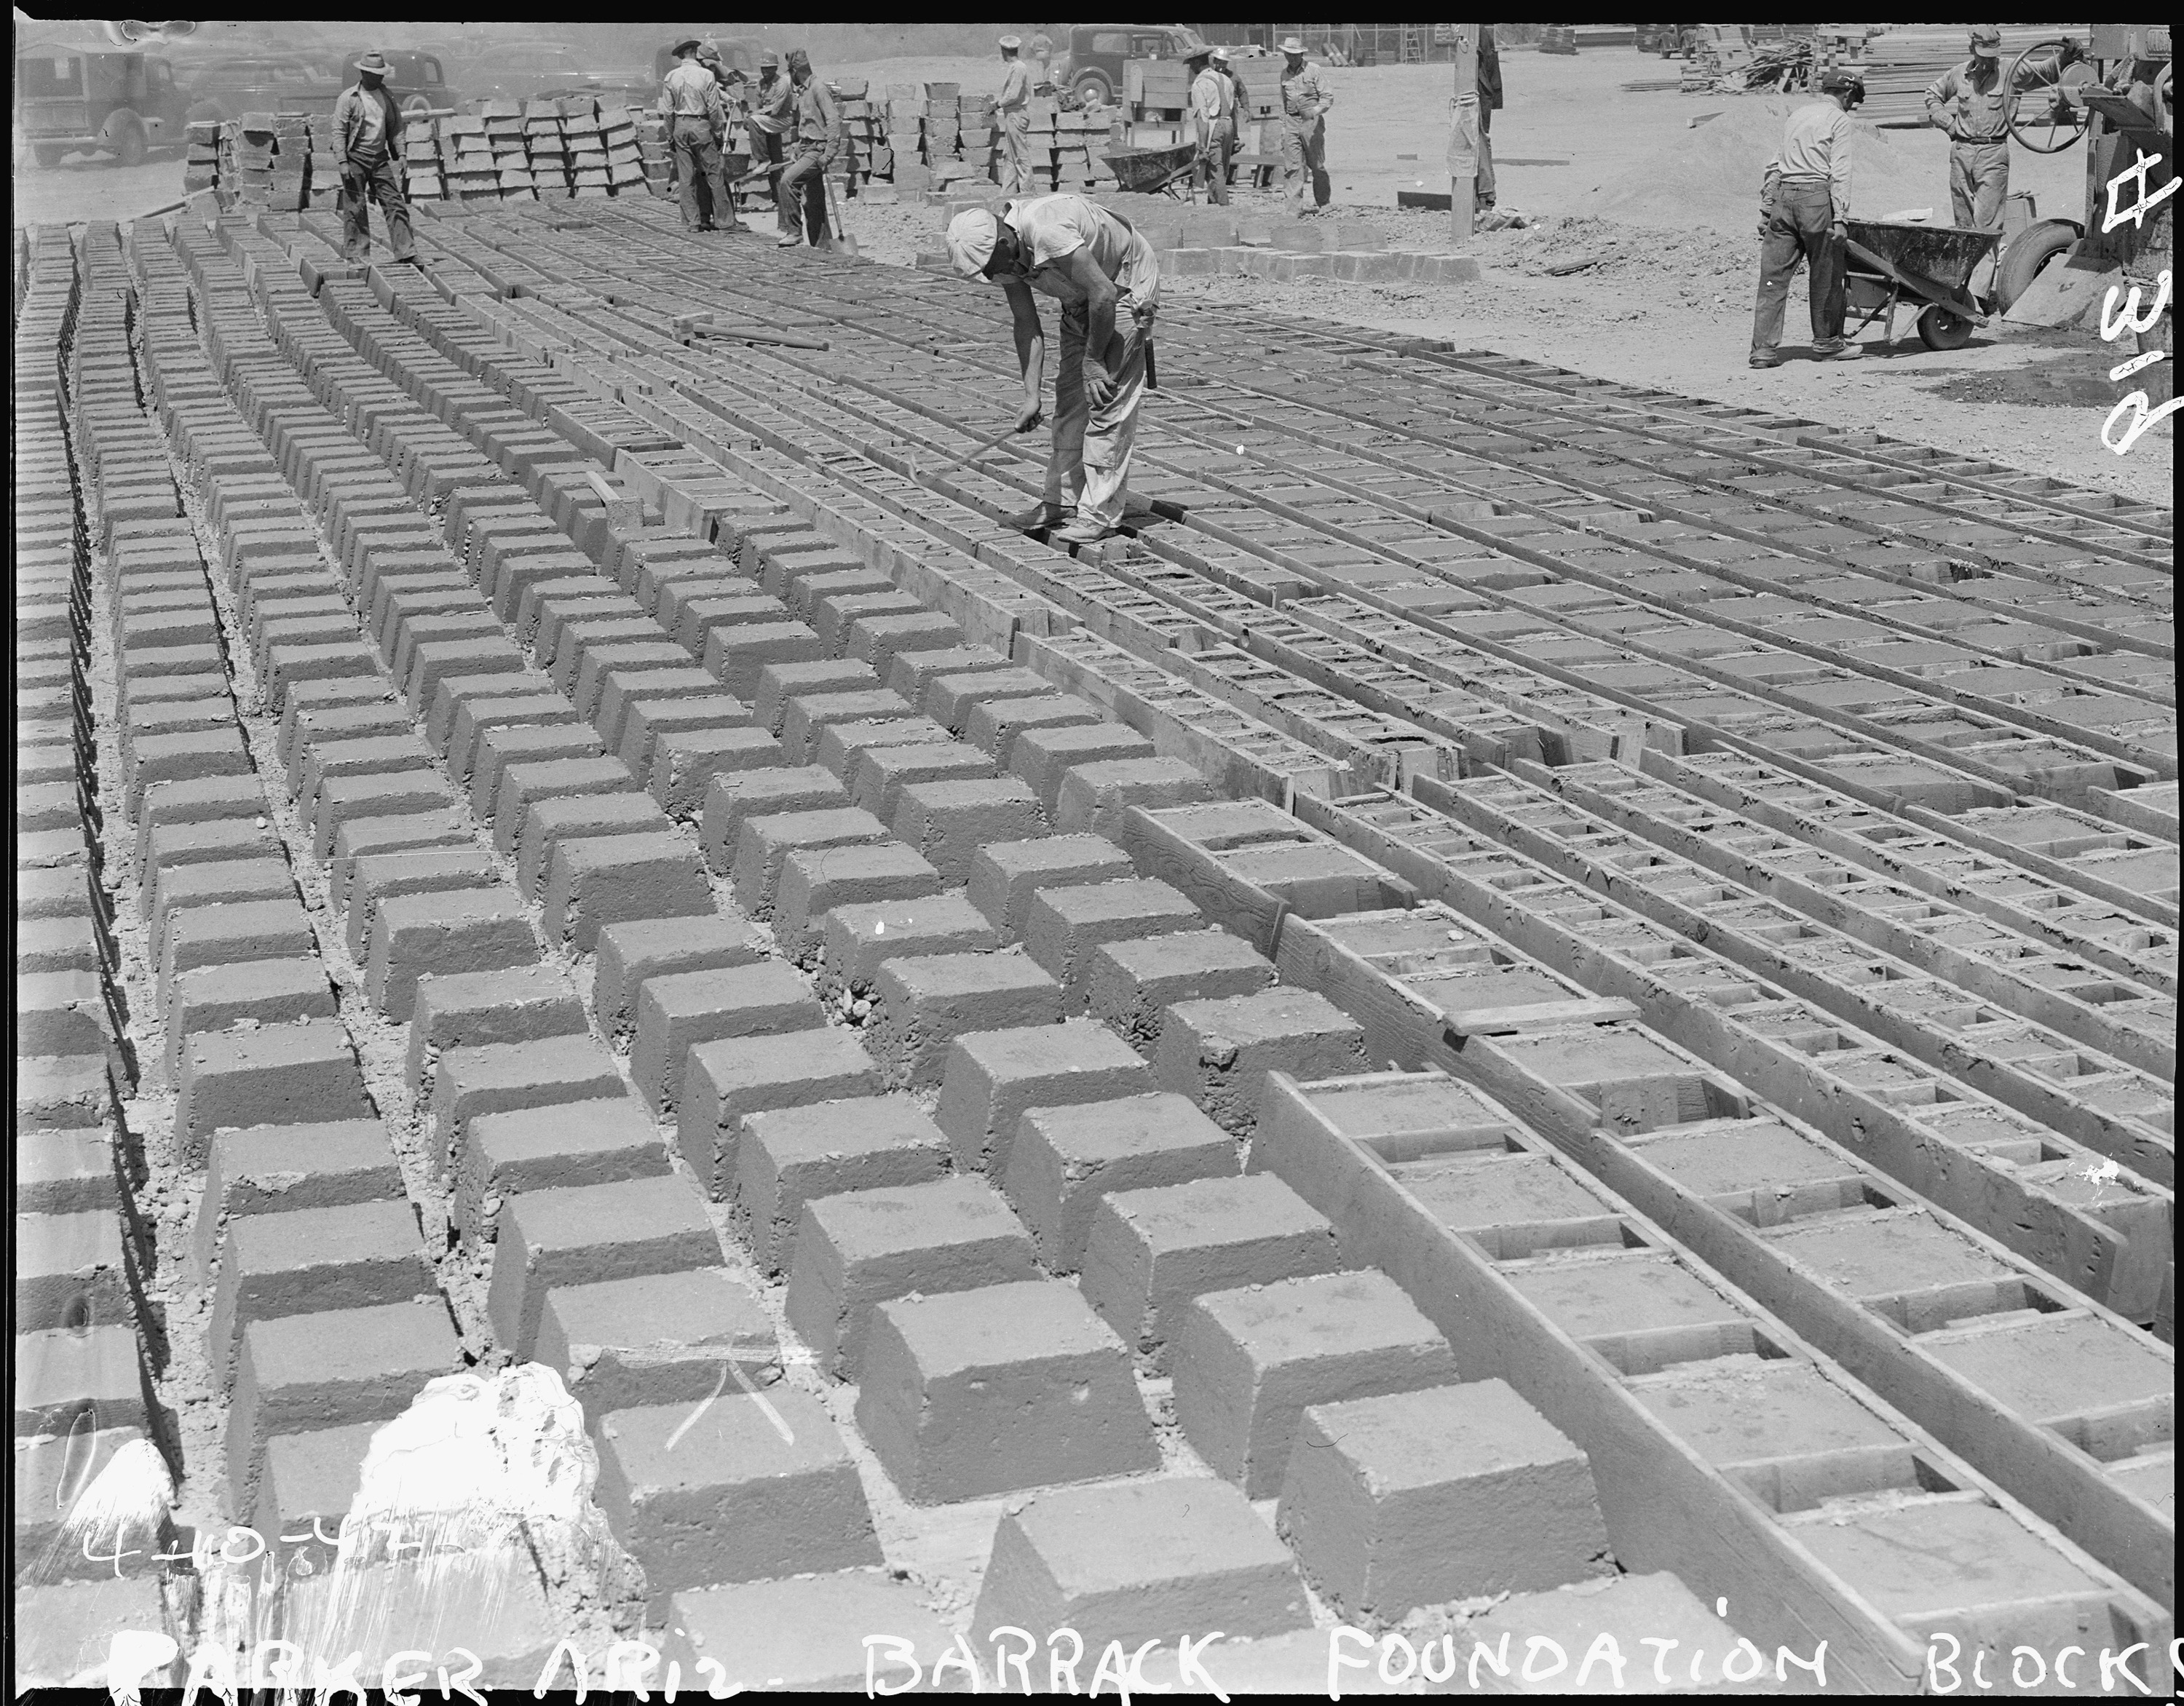 Parker C Arizona Thousands Of Concrete Foundation Blocks Were Cast For Foundations Of New Living Qu Nara